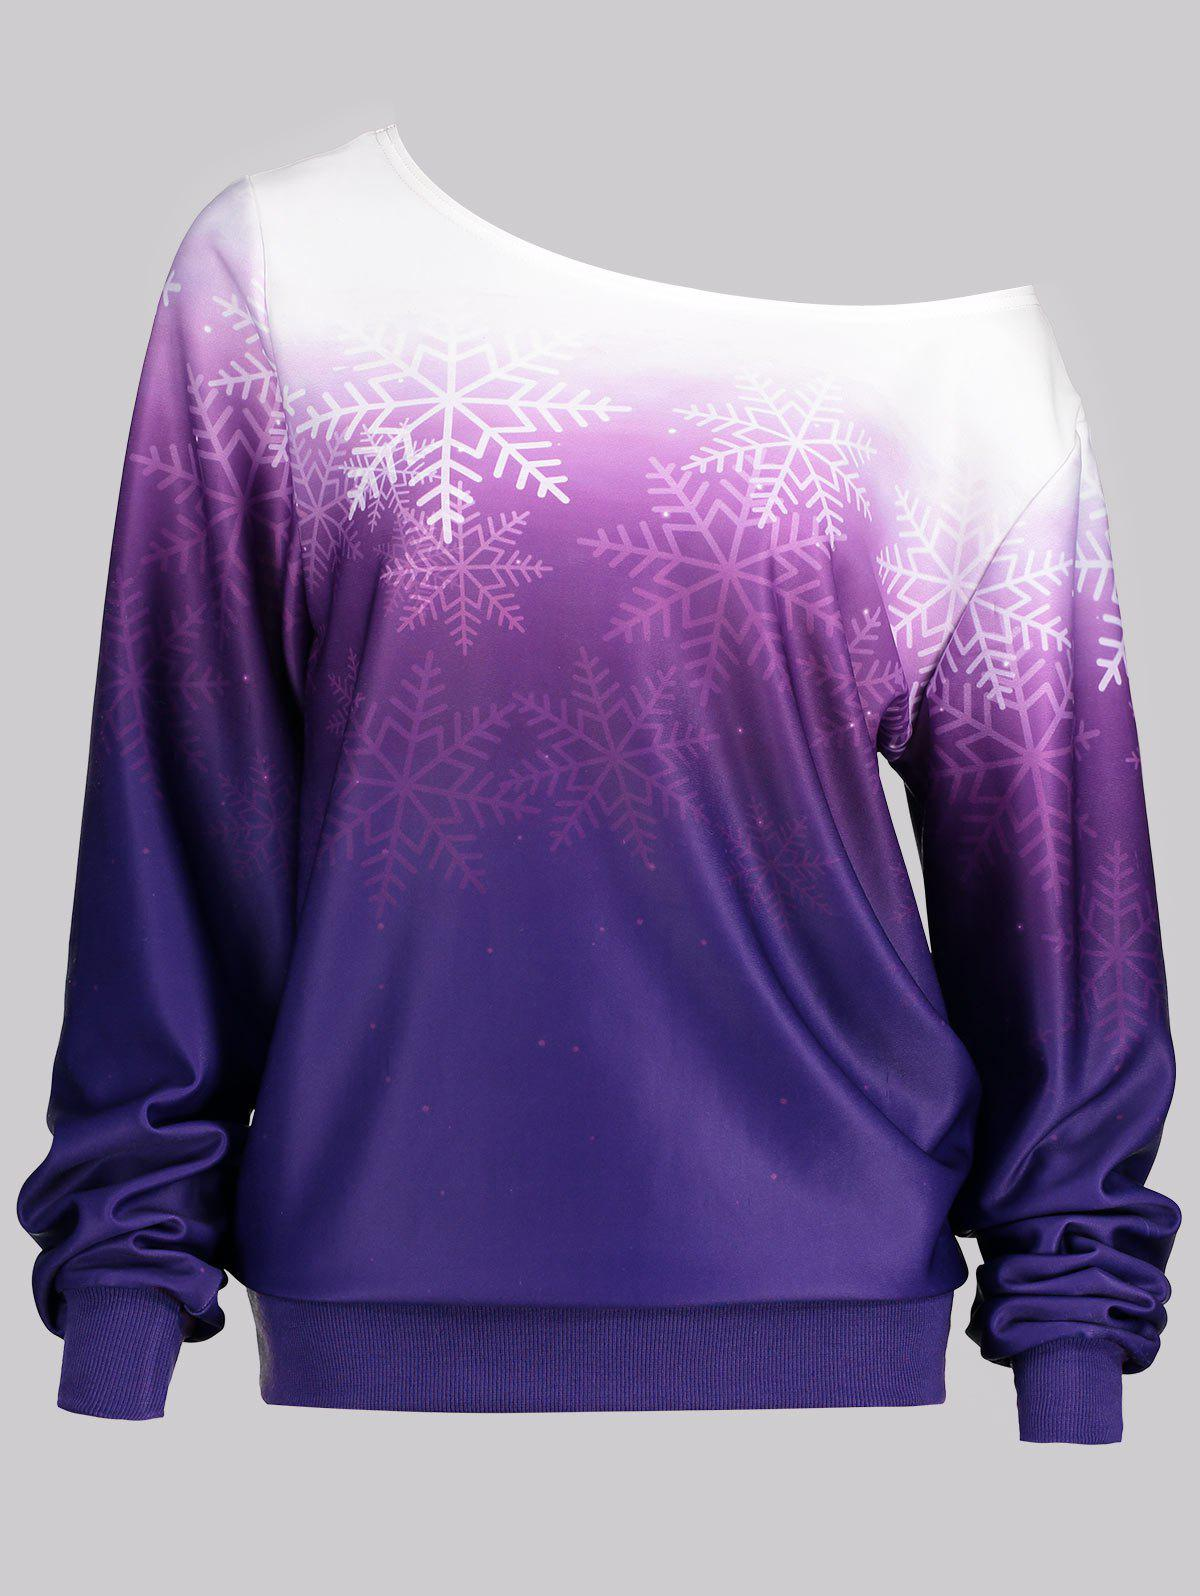 Snowflake Print Skew Neck Ombre SweatshirtWOMEN<br><br>Size: 2XL; Color: PURPLE; Material: Polyester; Shirt Length: Regular; Sleeve Length: Full; Style: Casual; Pattern Style: Ombre; Season: Fall,Spring; Weight: 0.3600kg; Package Contents: 1 x Sweatshirt;